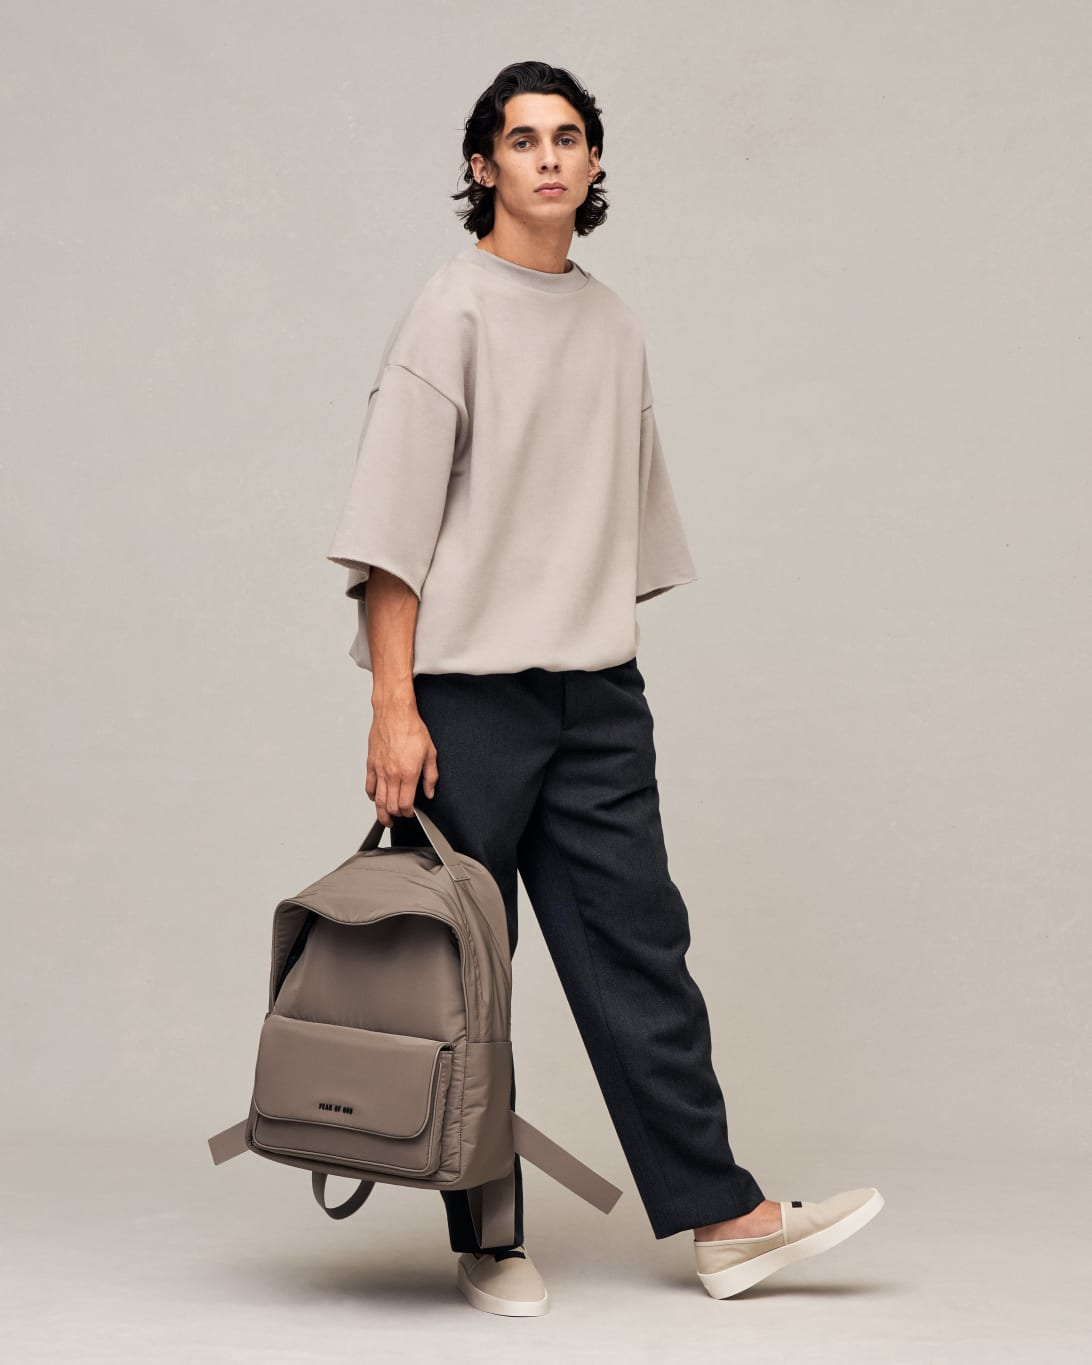 Seventh Collection | Fall/Winter Lookbook Look 15